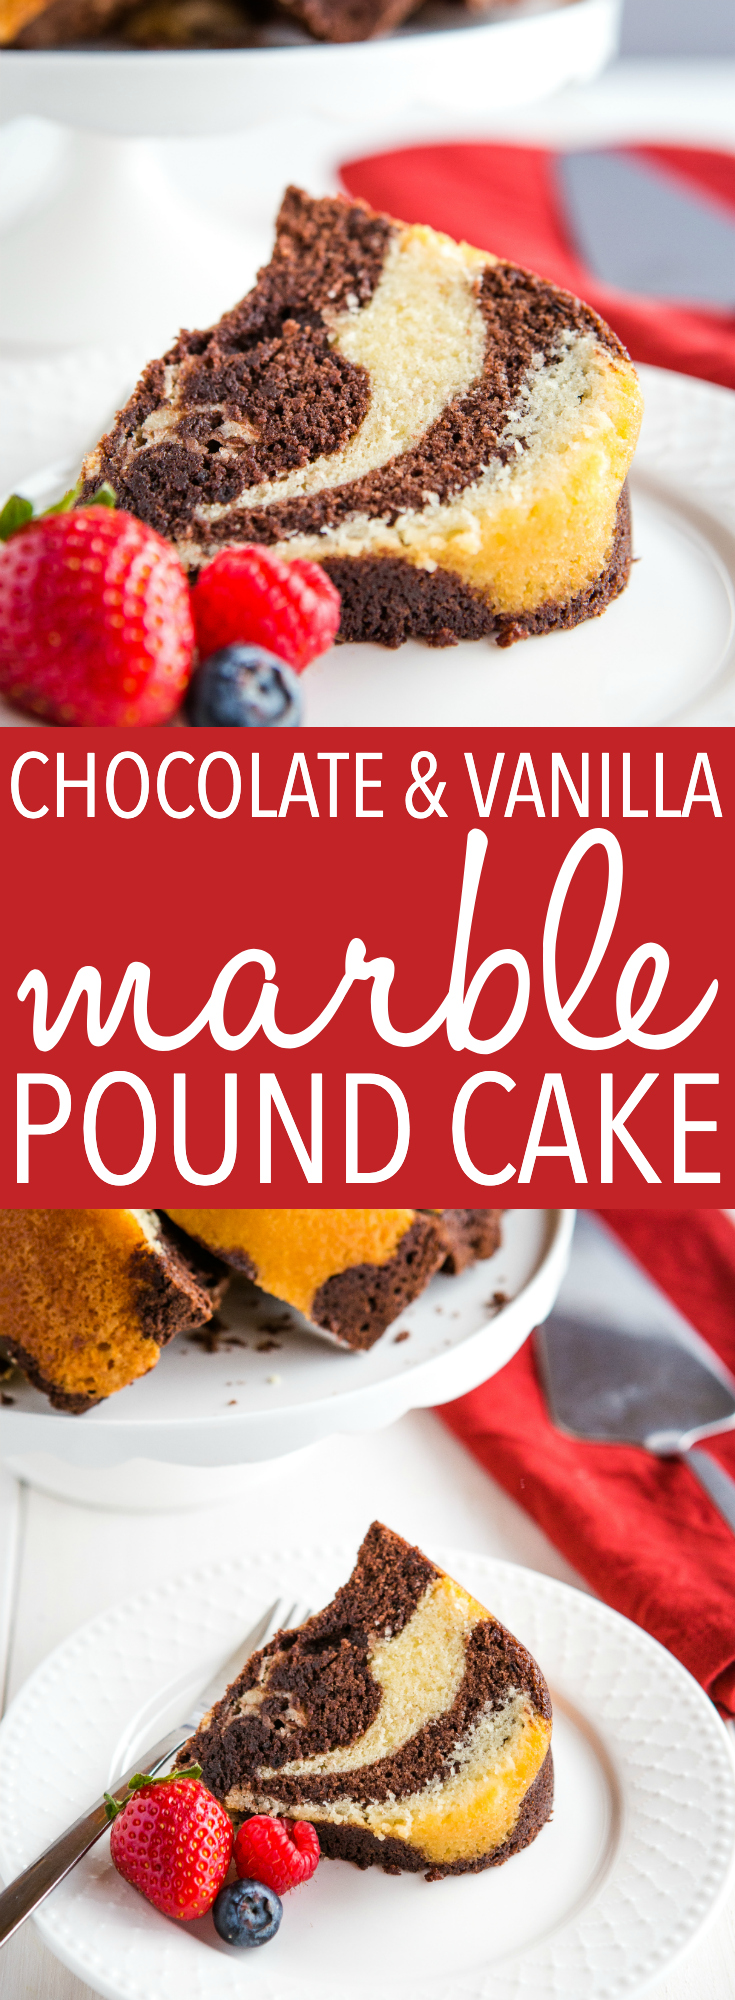 This Chocolate Vanilla Marble Pound Cake is tender and moist, and it's the perfect classic dessert to serve with fresh berries or for coffee break.Recipe from thebusybaker.ca! #poundcake #cake #easy #recipe #dessert #classic #baking #baker #foodblog #berries  via @busybakerblog